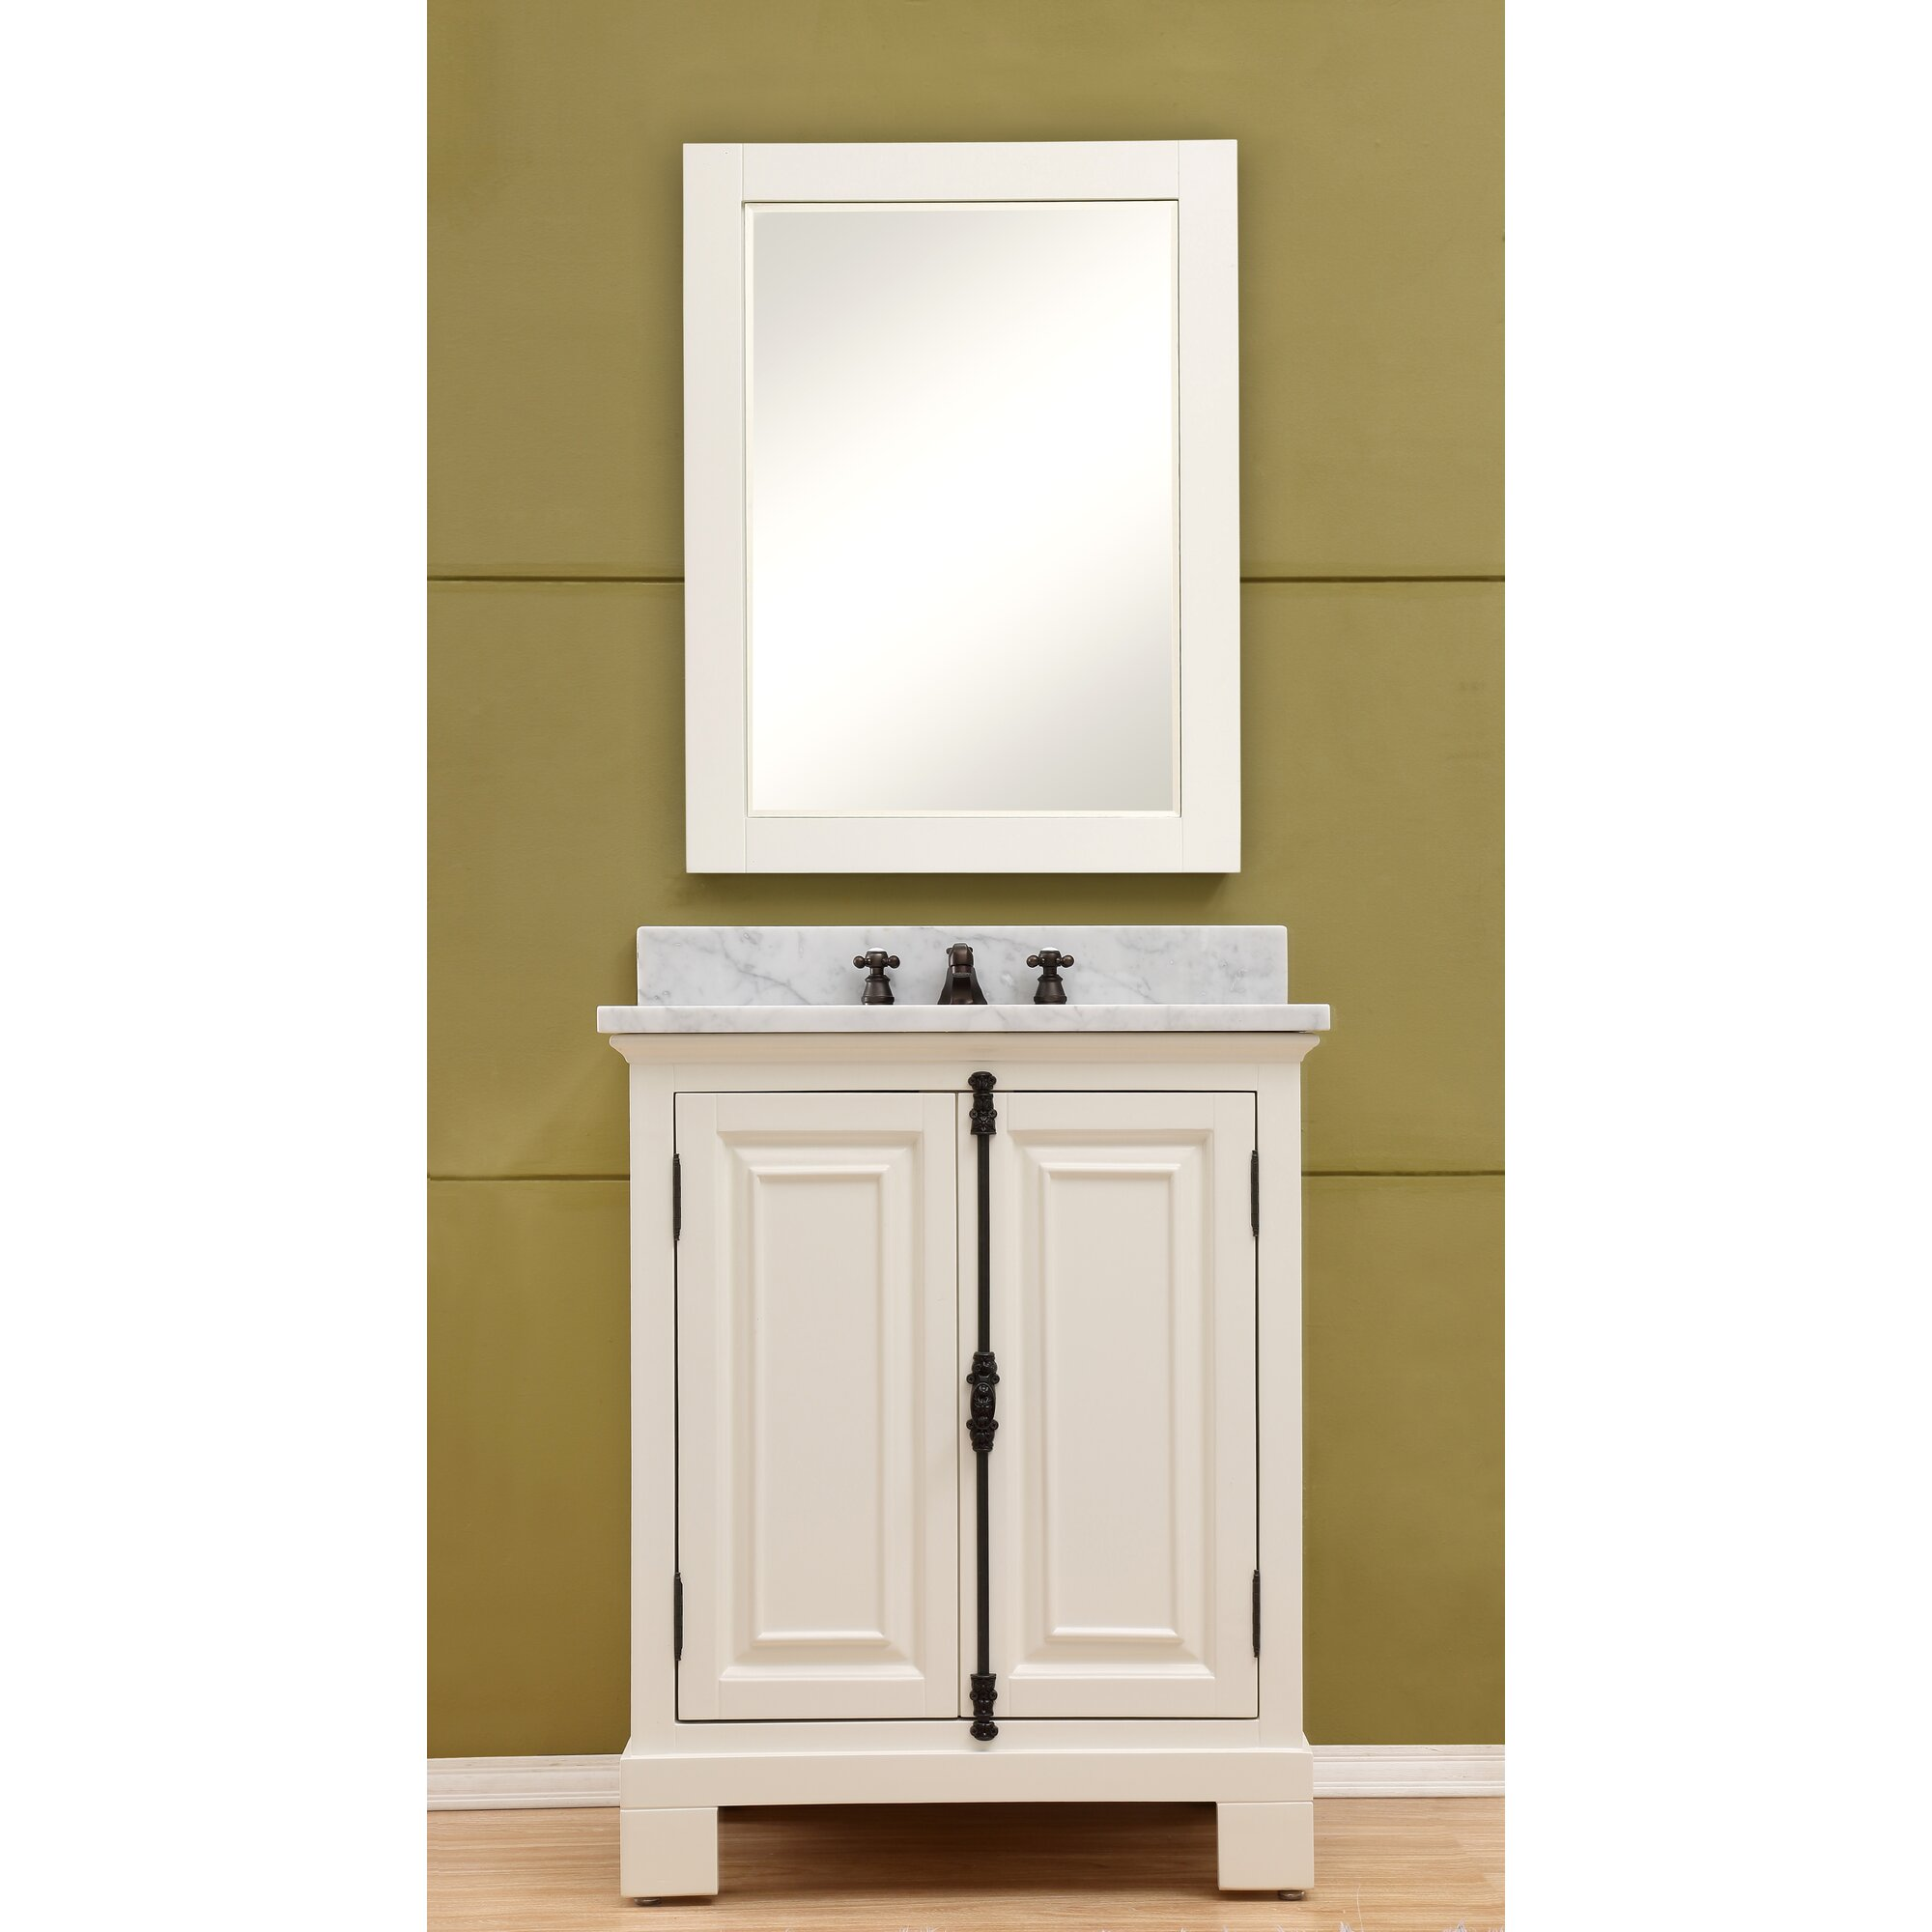 Dcor Design Freemont 30 Single Bathroom Vanity Set With Mirror And Faucet